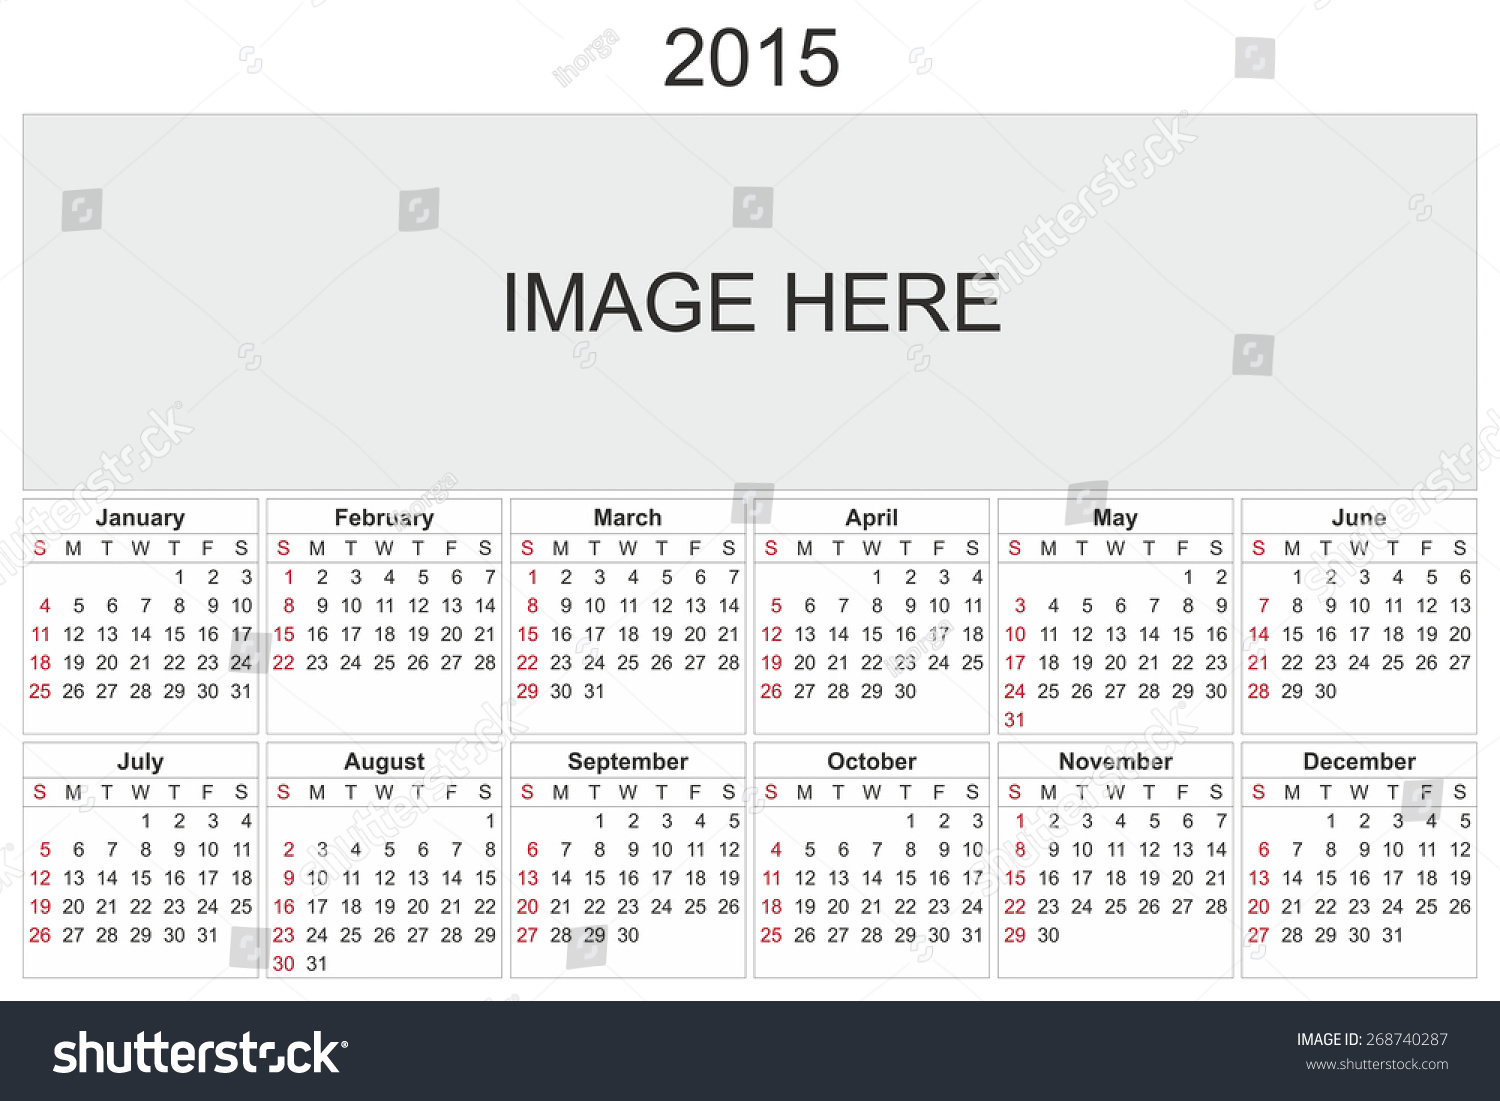 Calendar Design Using Photo : Calendar designed by computer using stock